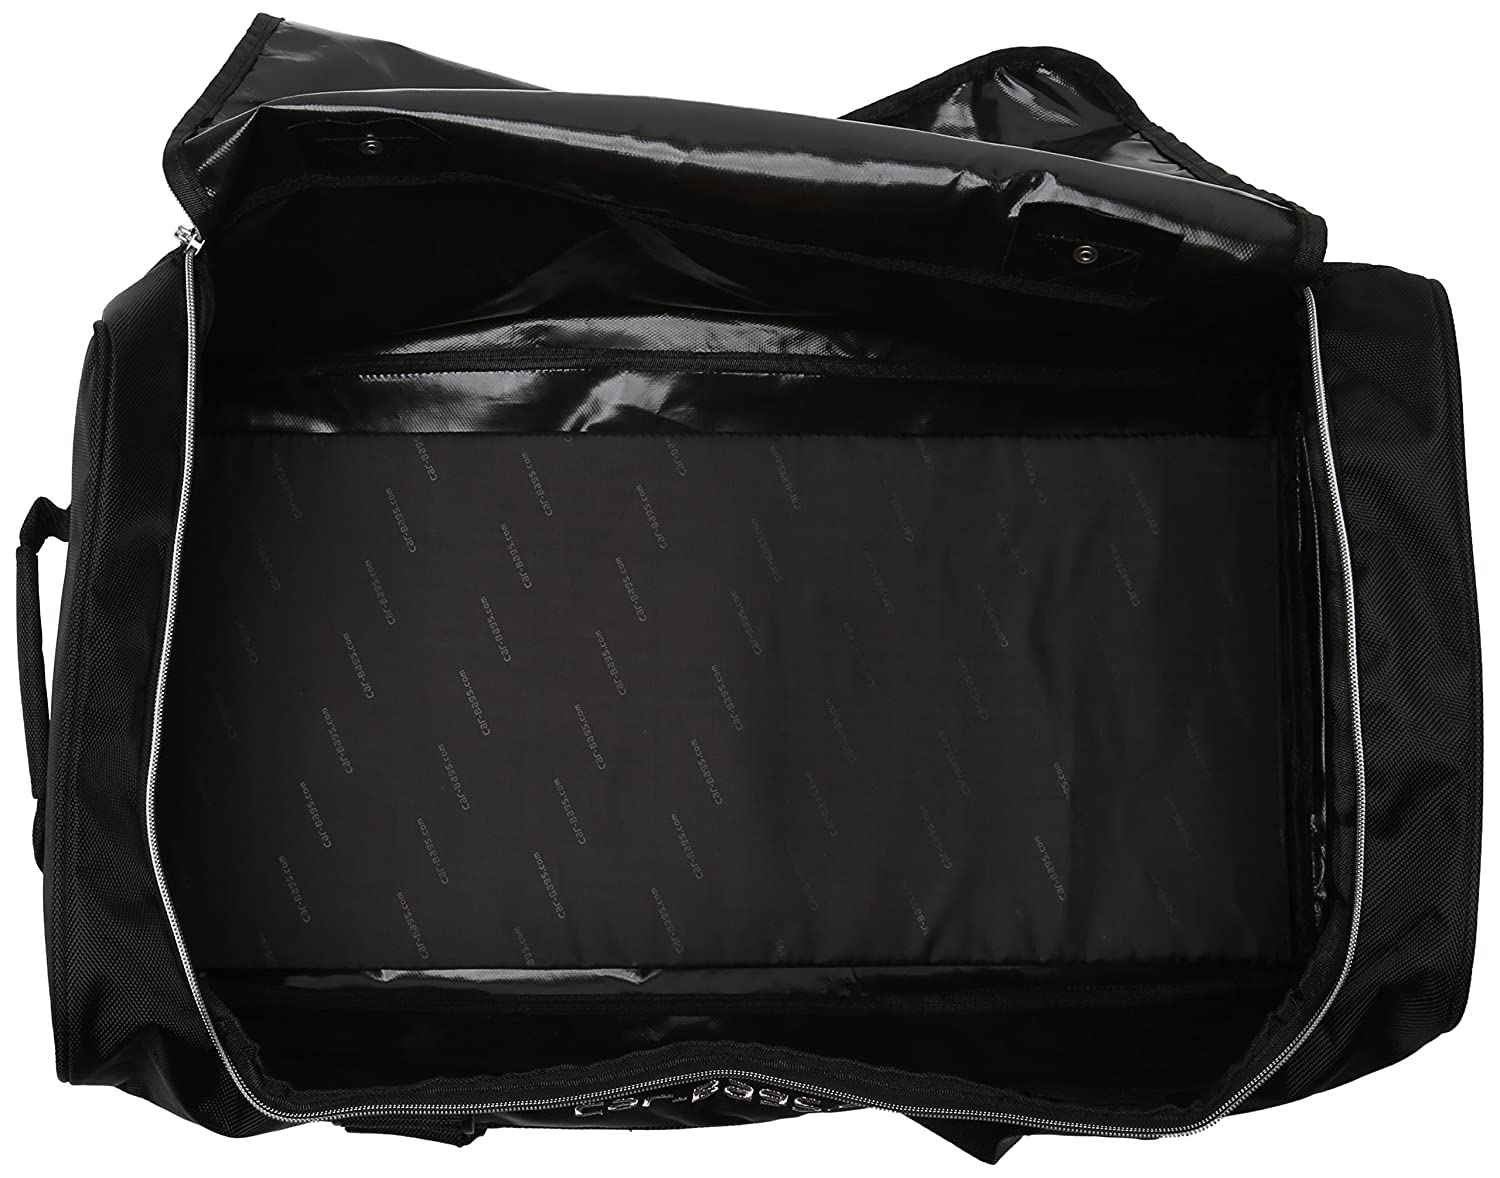 Carbags BOXBAG3/ Roof Box Universal